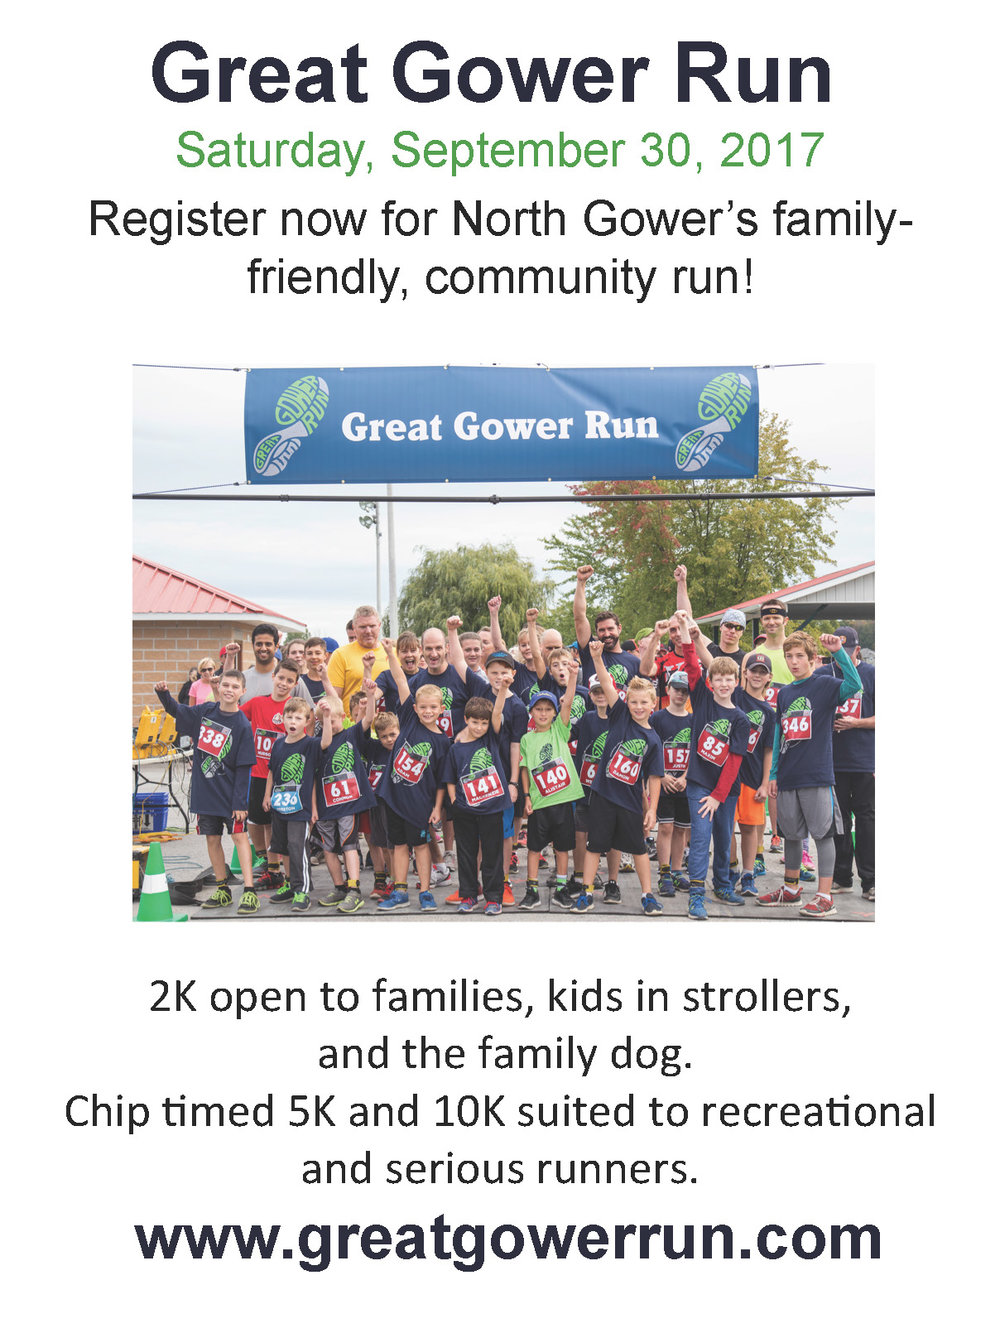 Great Gower Run poster 2017.jpg